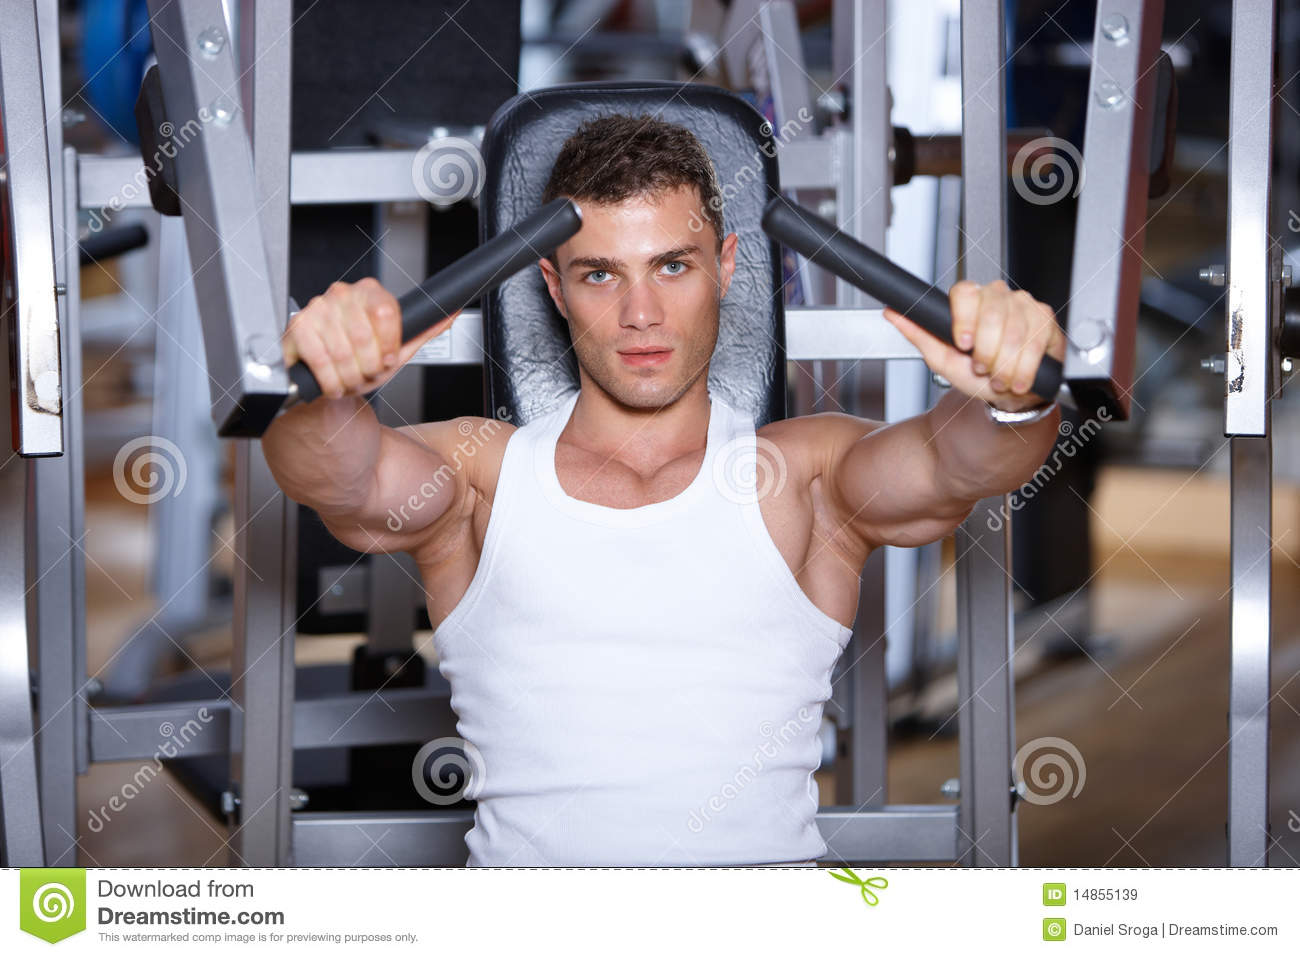 Man at the gym